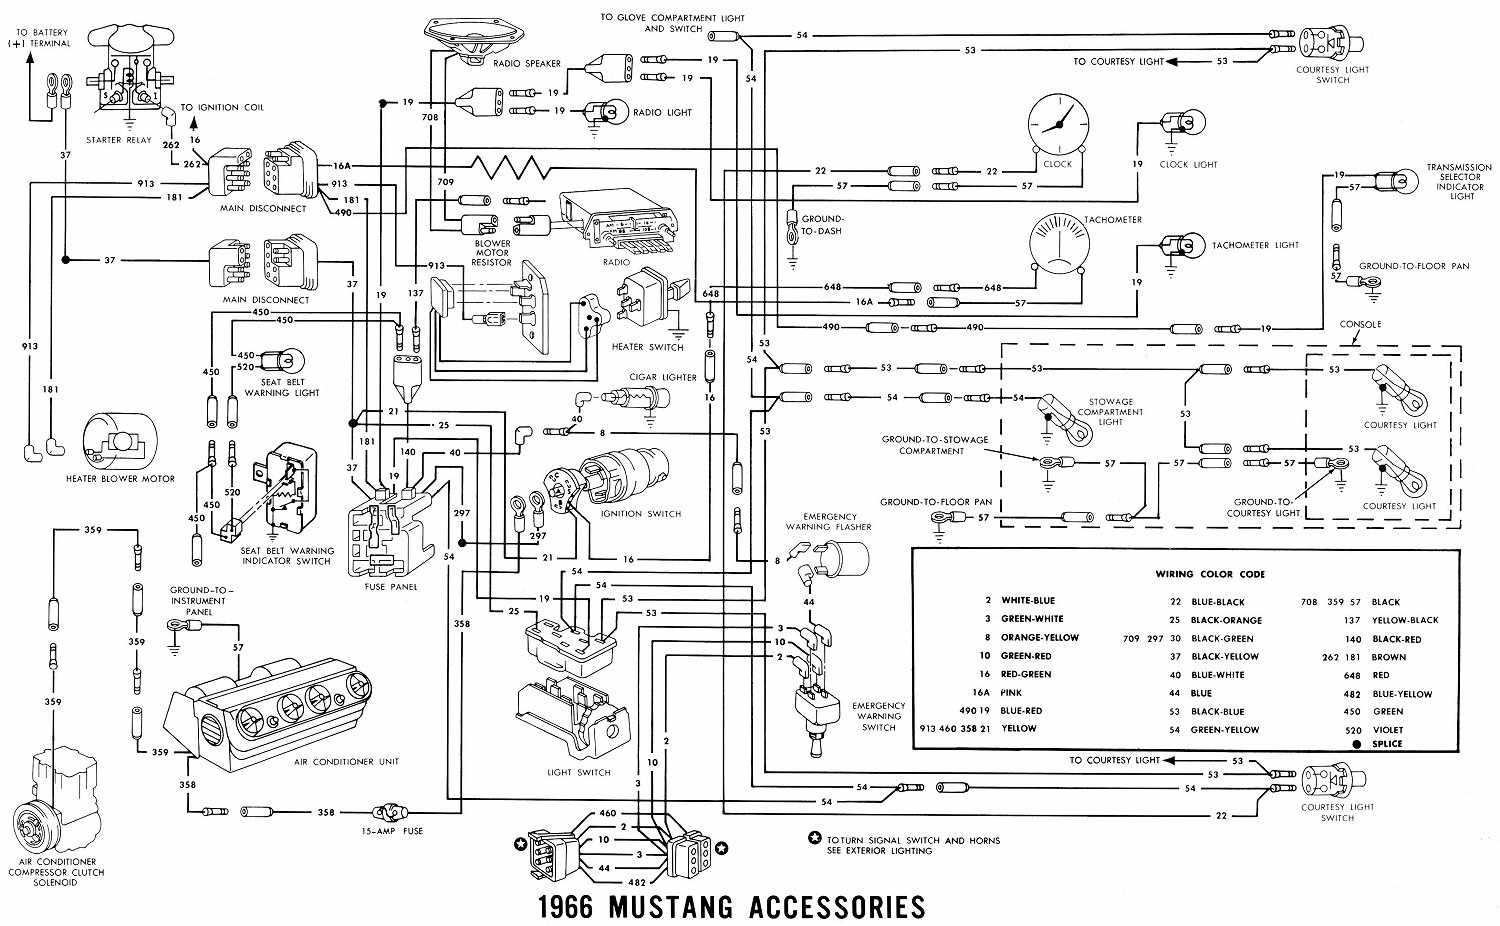 1966 mustang wiring diagram pdf v    manual       1966    ford    mustang    accessories electrical    wiring     v    manual       1966    ford    mustang    accessories electrical    wiring